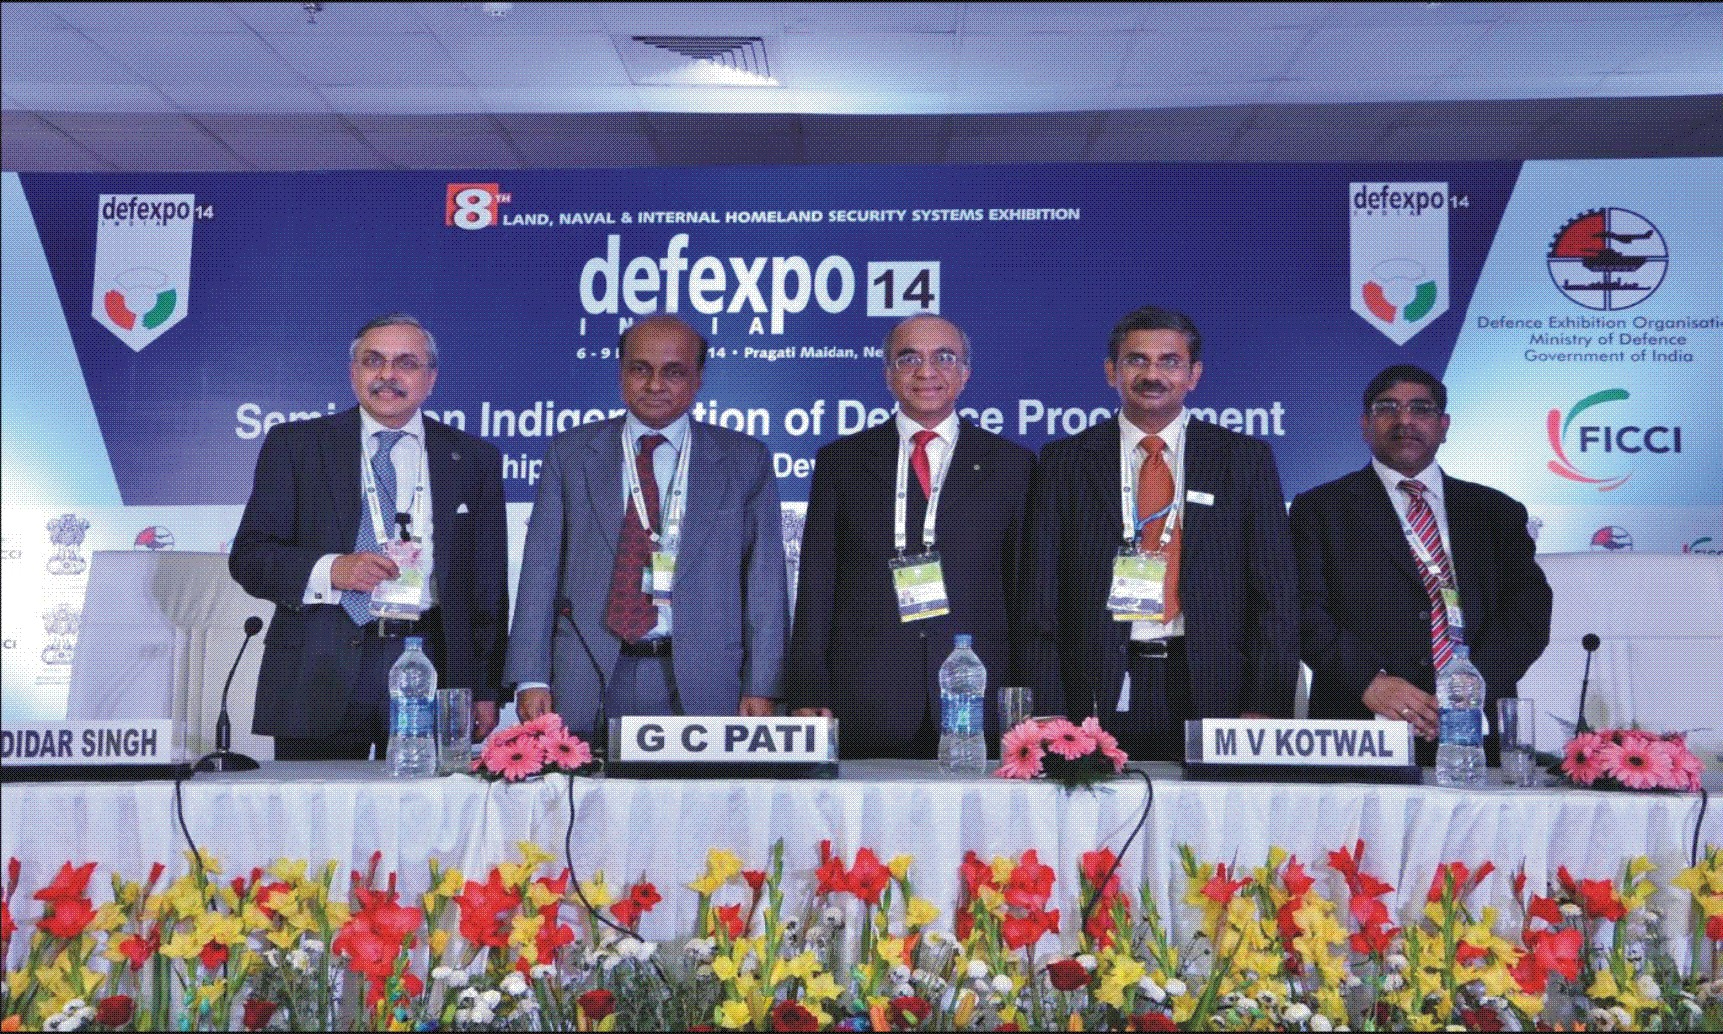 Inaugural Session (L to R) Dr. A. Didar Singh, Secretary General, FICCI; Mr G C Pati, Secretary (DP), Ministry of Defence; Mr M V Kotwal, Chairman, FICCI Defence Committee / Member of the L&T Board & President  Heavy Engineering, Larsen & Toubro Ltd.; Mr Rahul Chaudhry,... 			